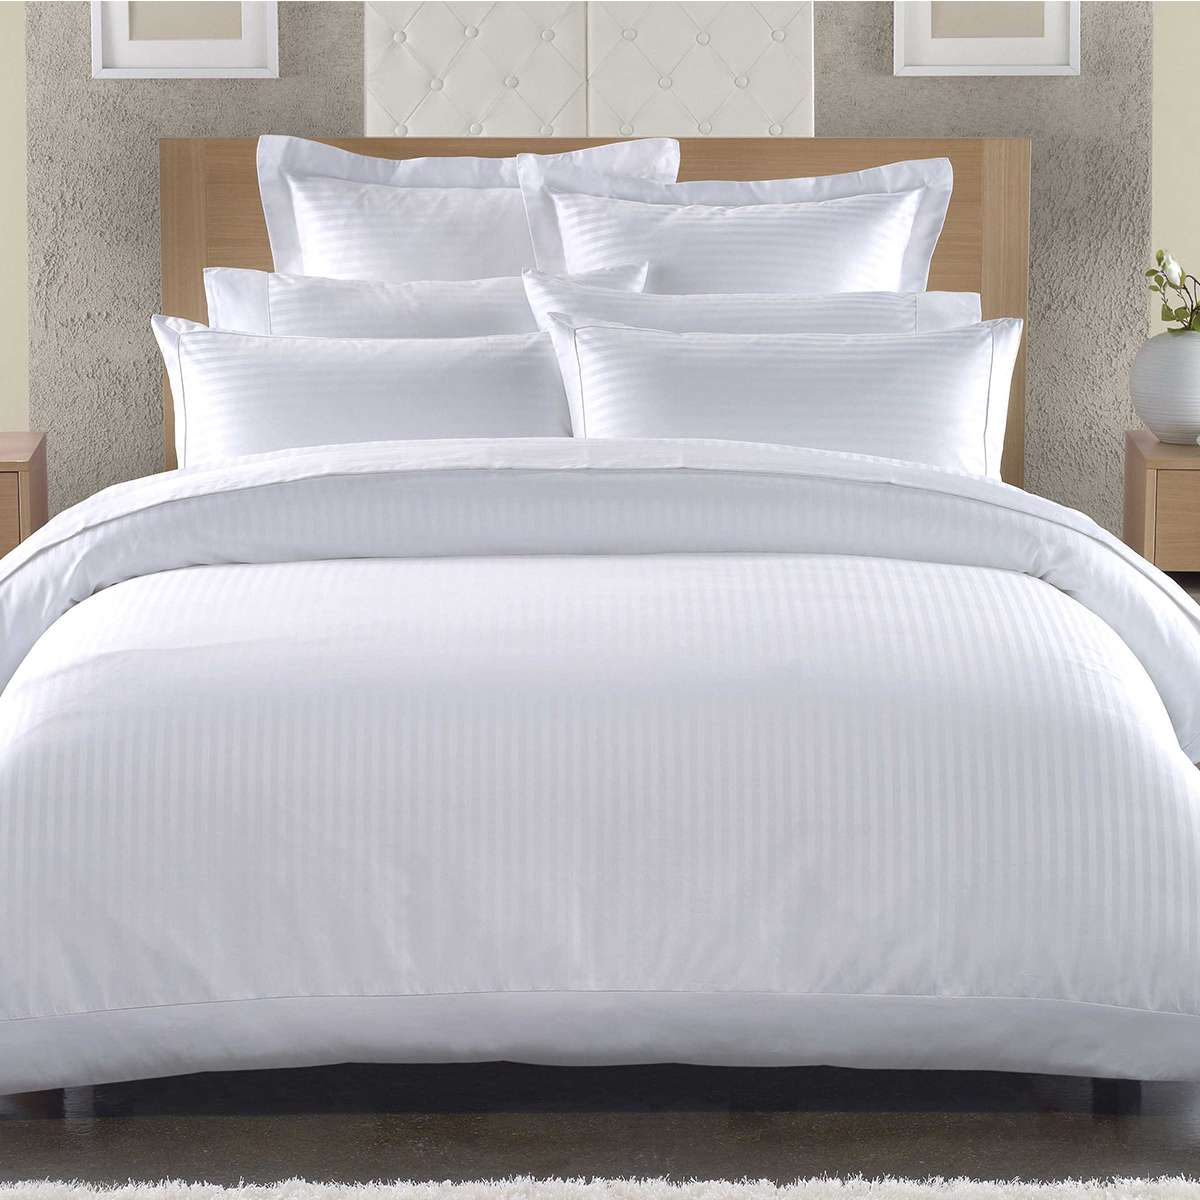 Duvet Covers Boho | White Duvet Cover | Target Duvet Cover